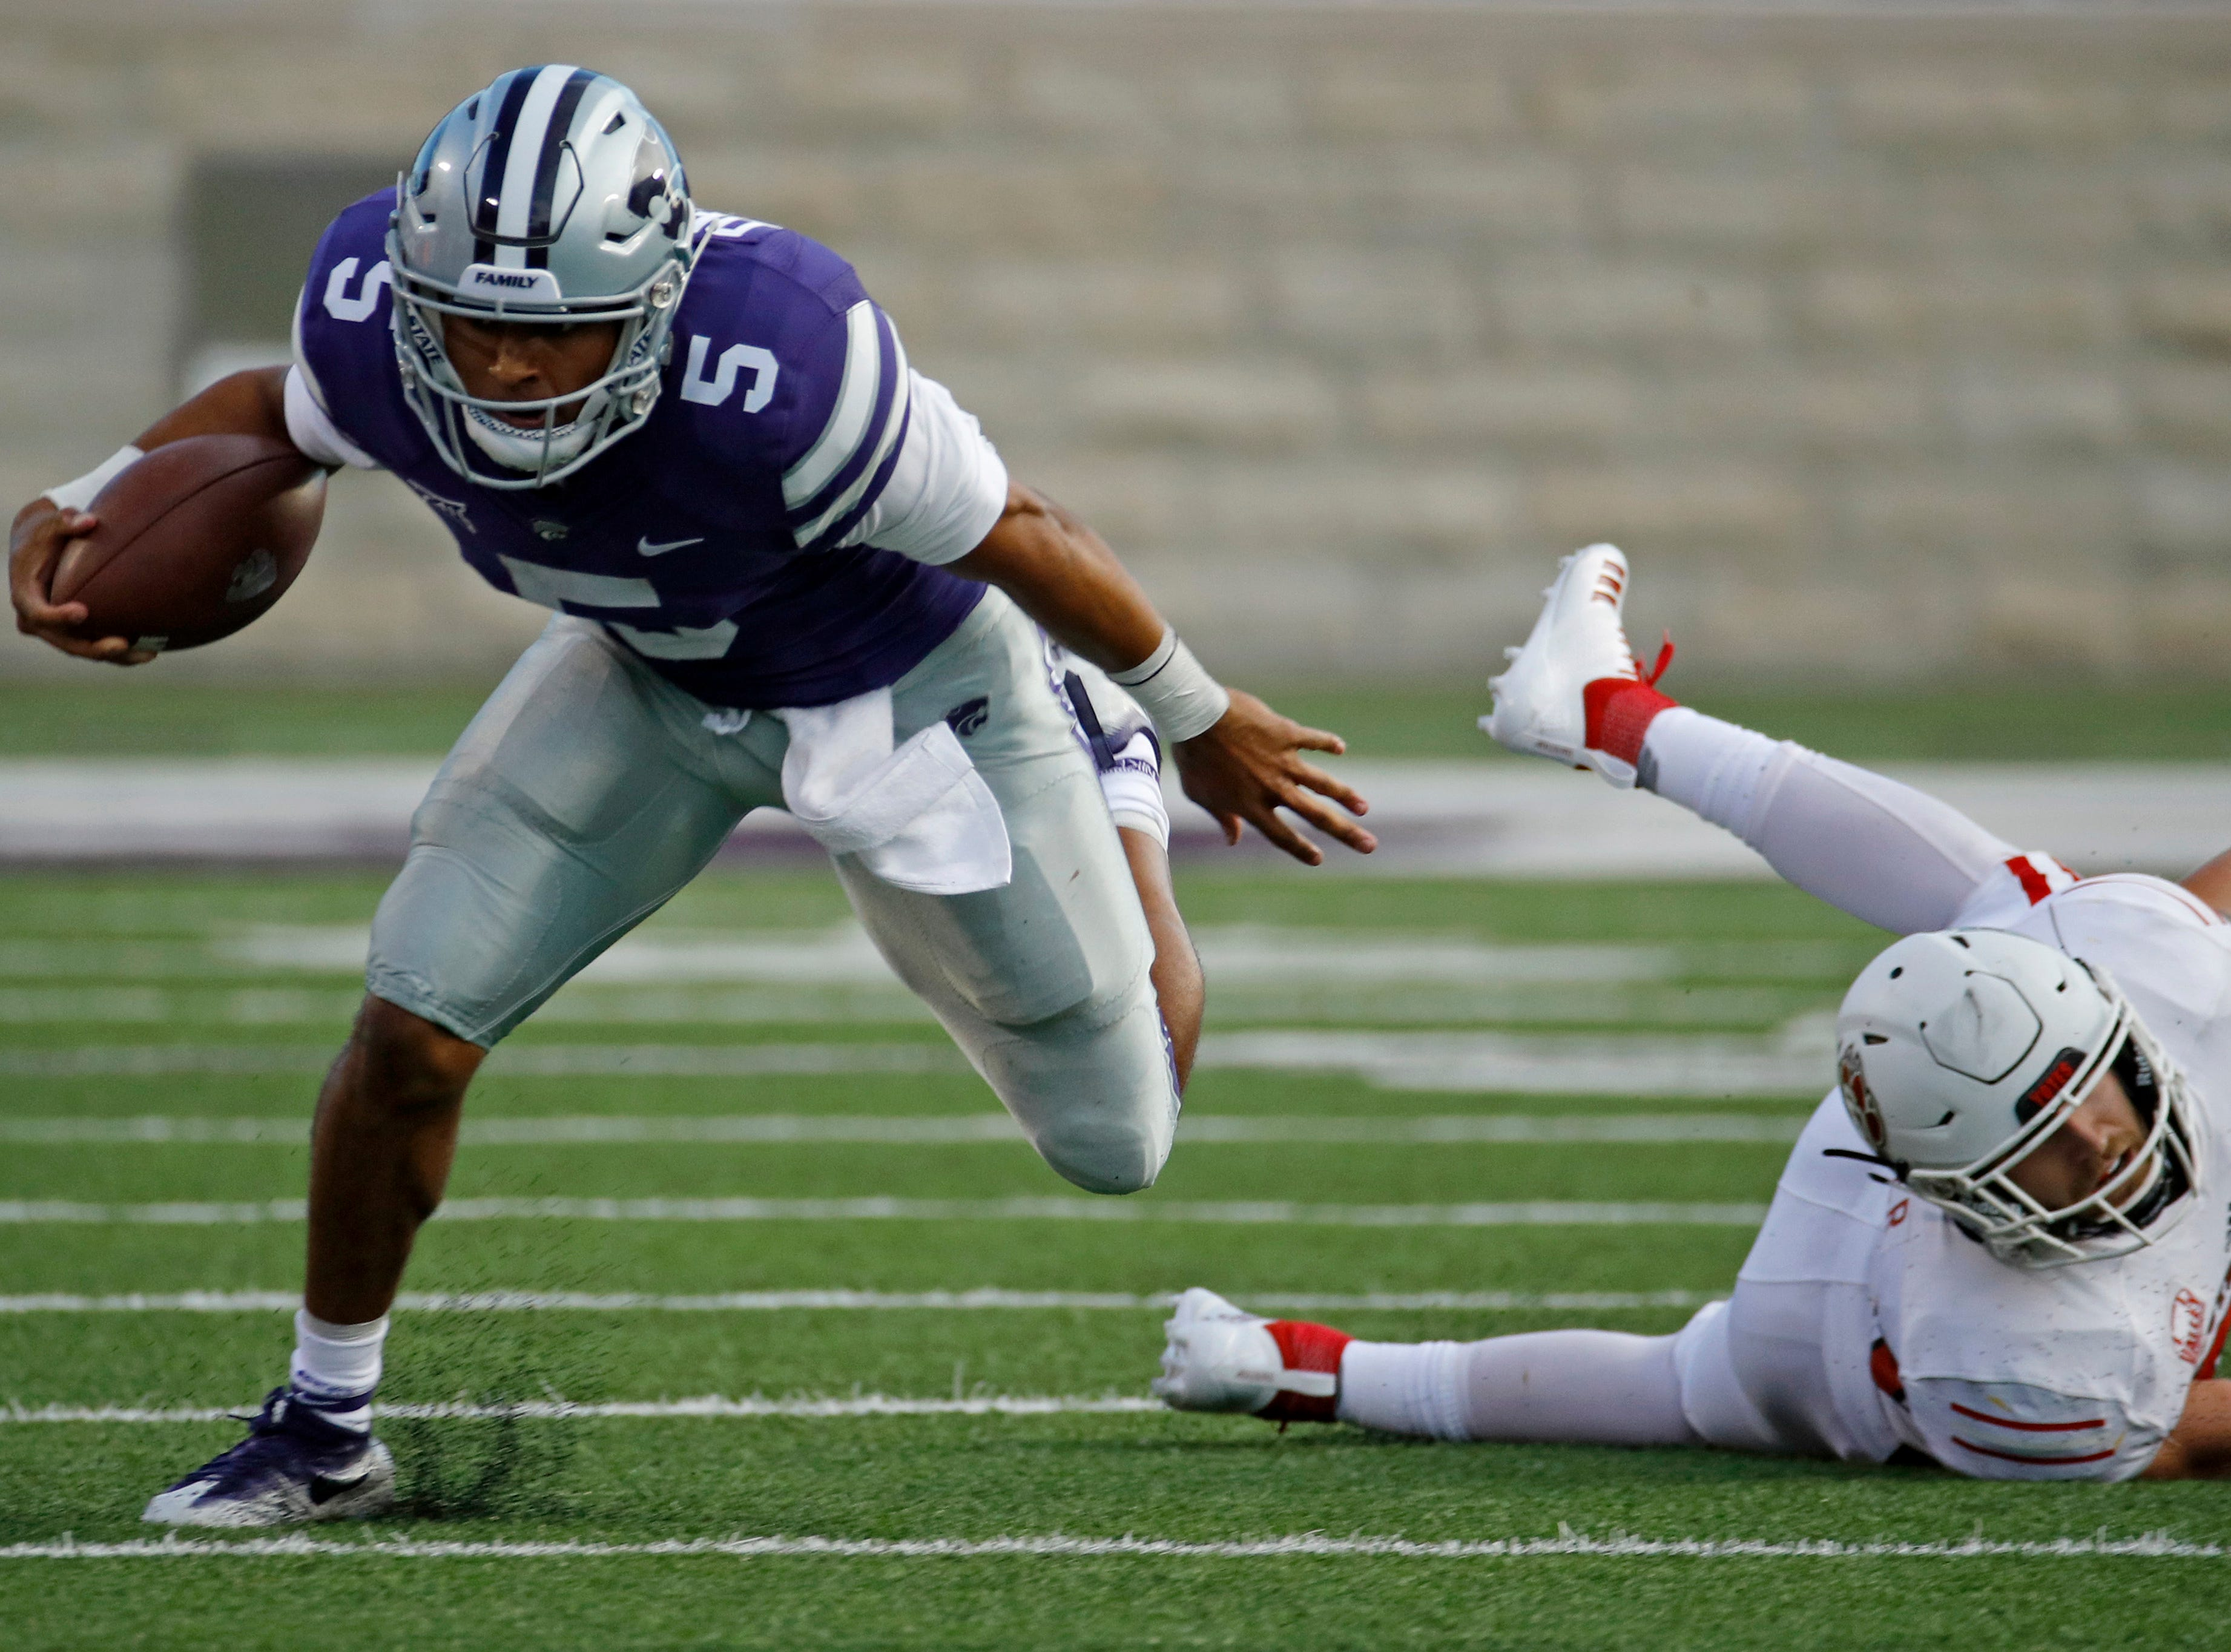 Kansas State quarterback Alex Delton (5) gets past South Dakota linebacker Alex Coker (20) as he runs the ball for a first down during the first half of an NCAA college football game Saturday, Sept. 1, 2018, in Manhattan, Kan. (AP Photo/Charlie Riedel)